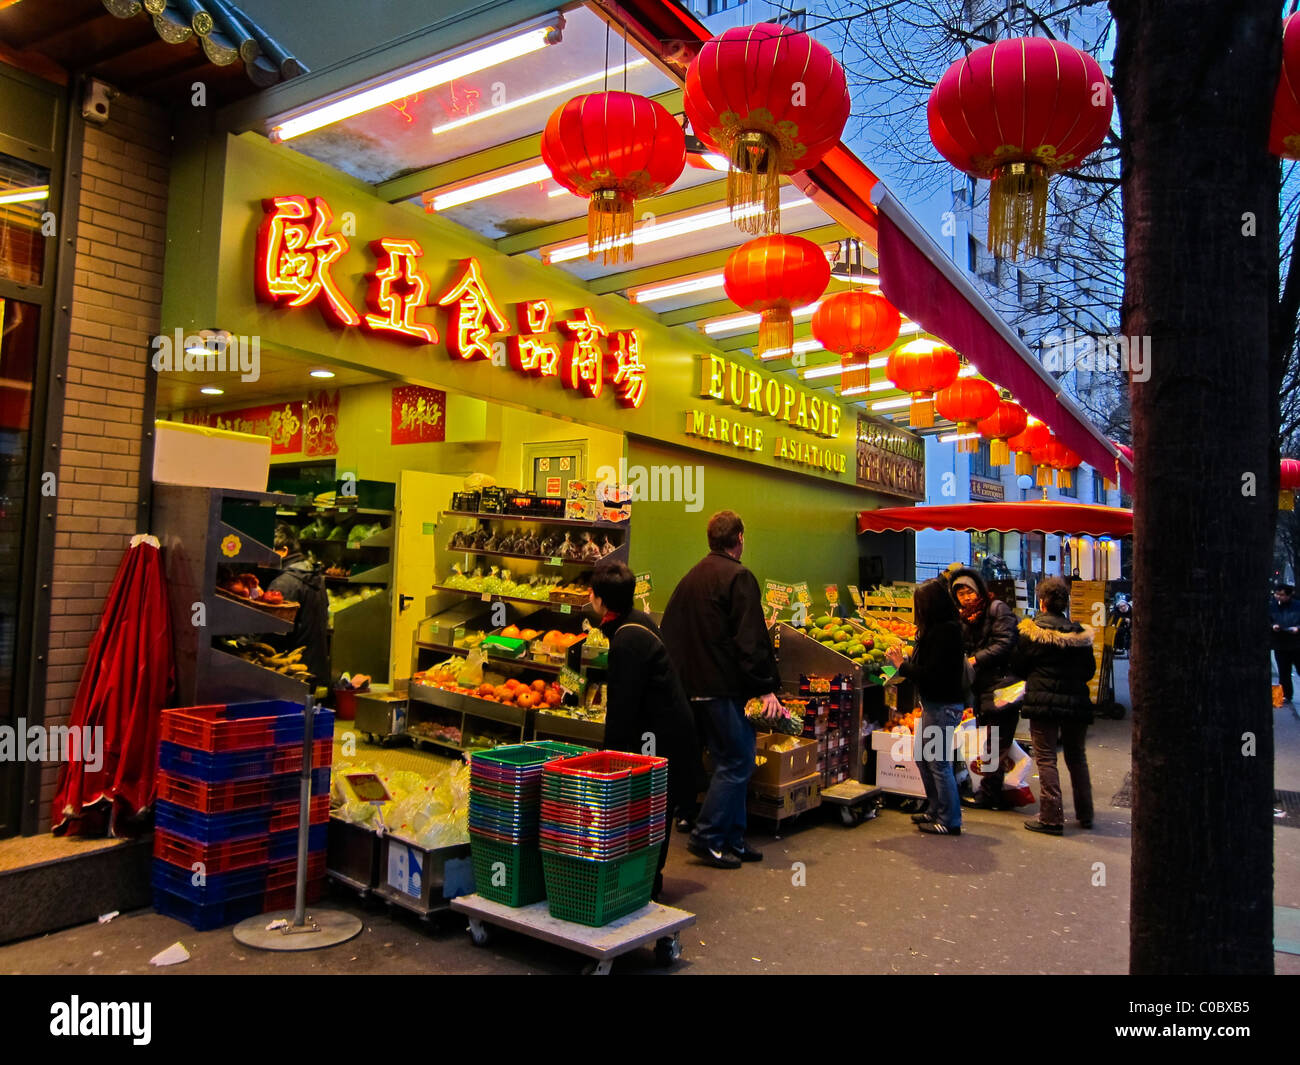 paris france asians shopping chinese food store chinatown stock photo royalty free image. Black Bedroom Furniture Sets. Home Design Ideas